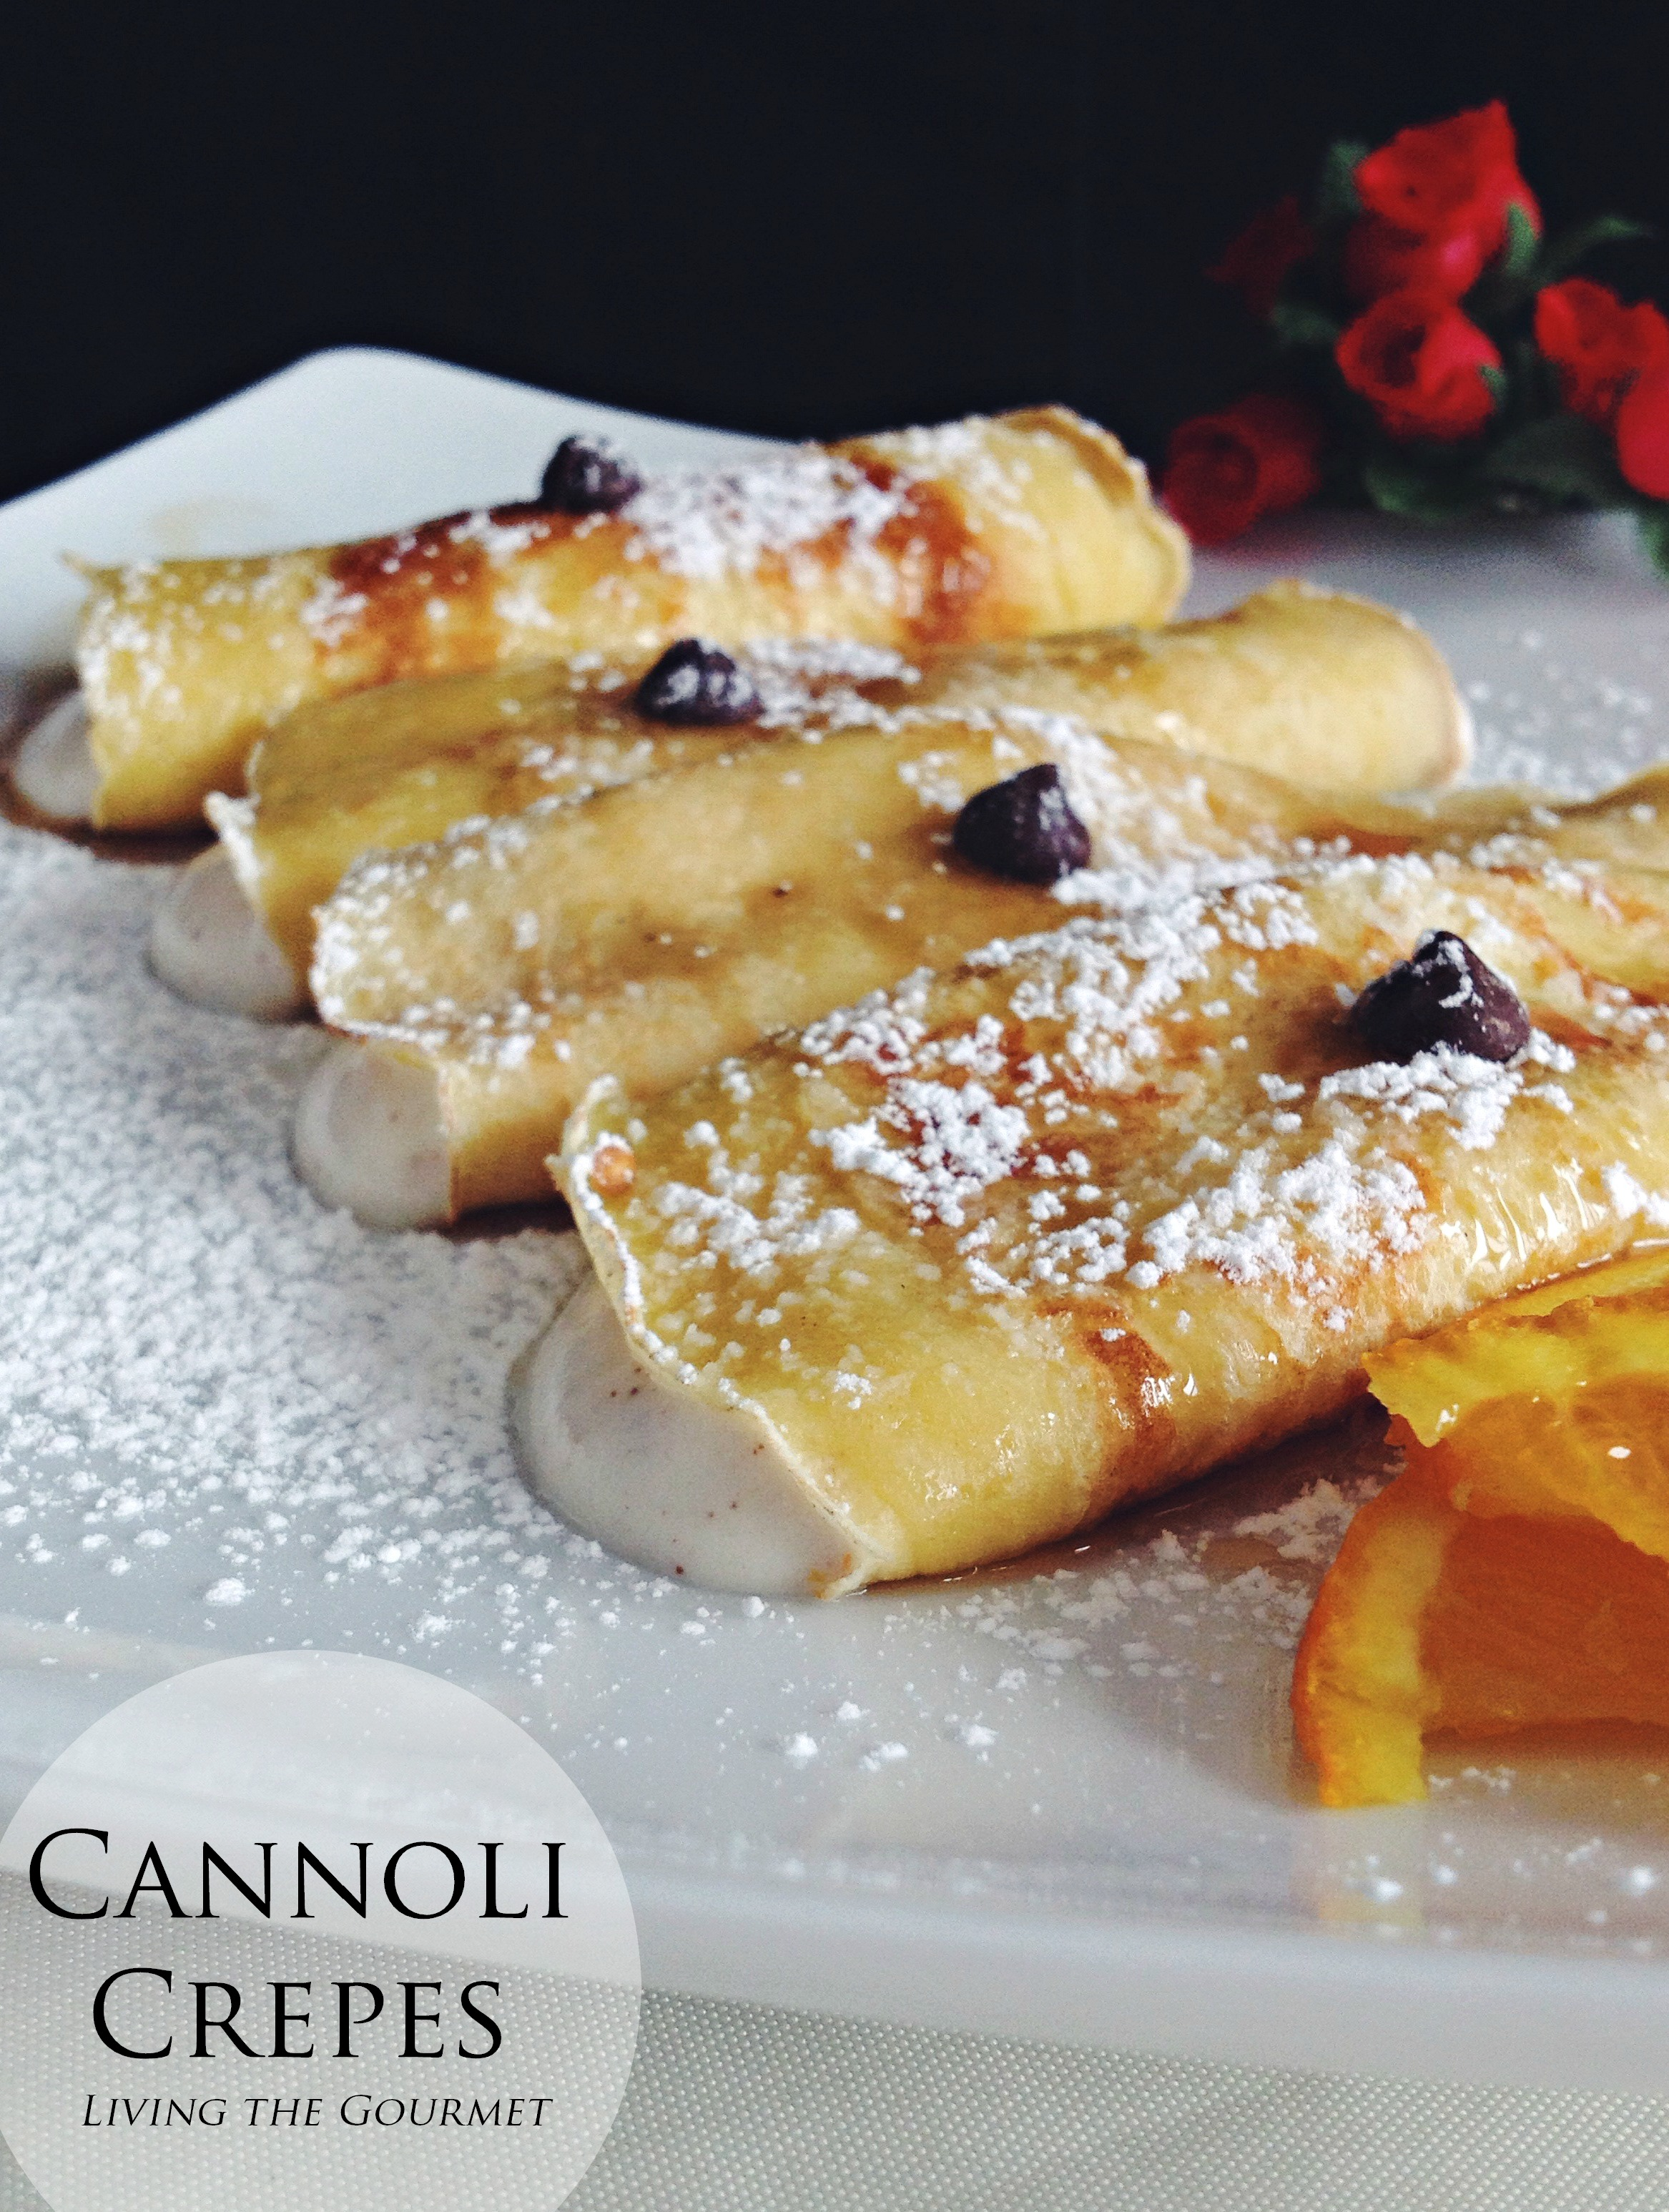 Living the Gourmet: Cannoli Crepes